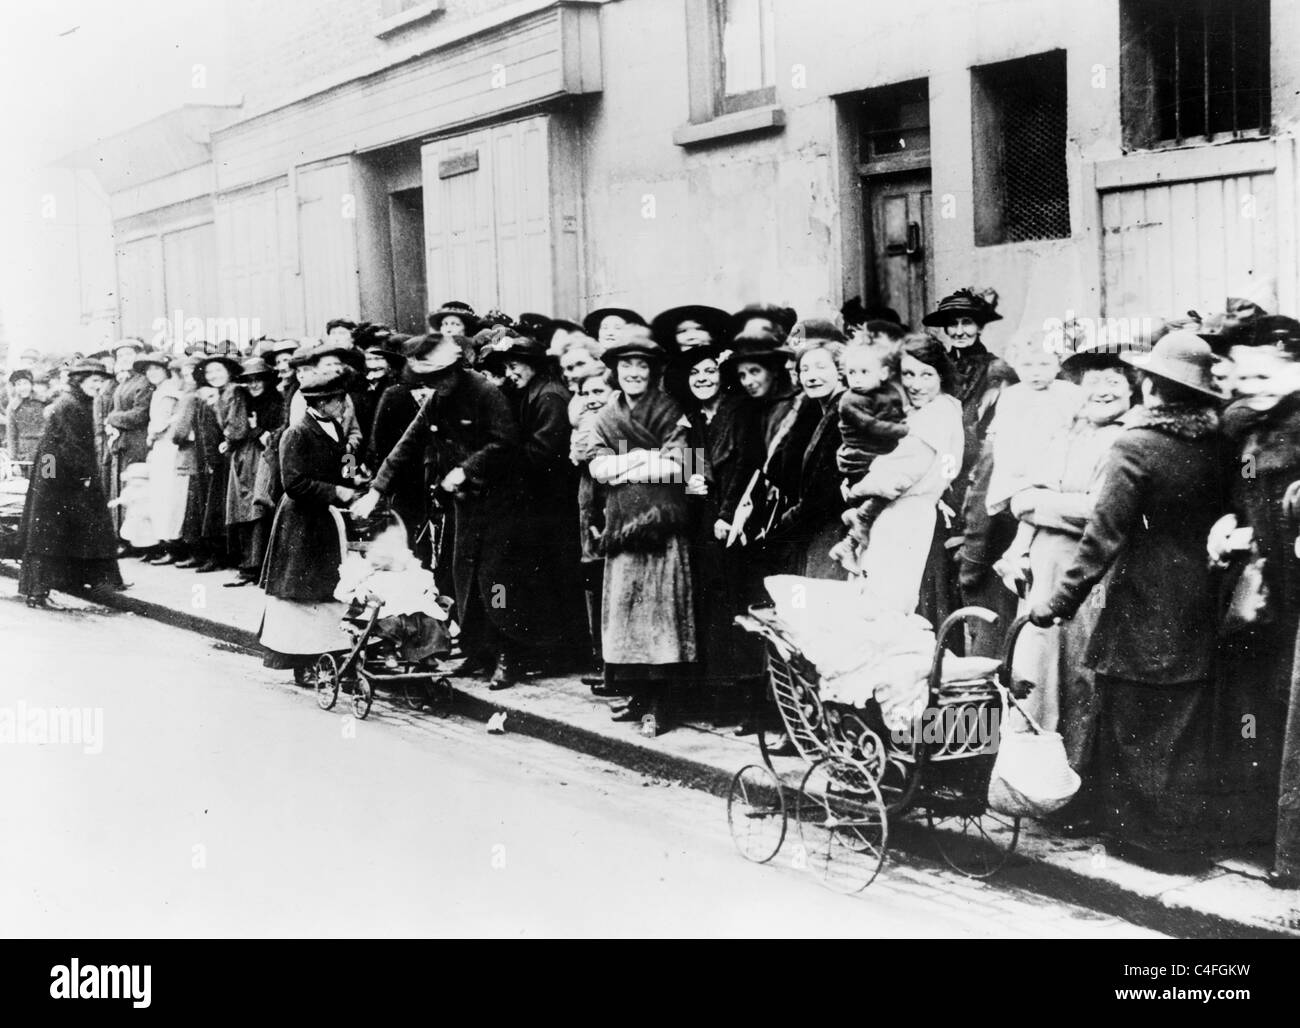 Women and children wait in a bread line in wartime England. - Stock Image